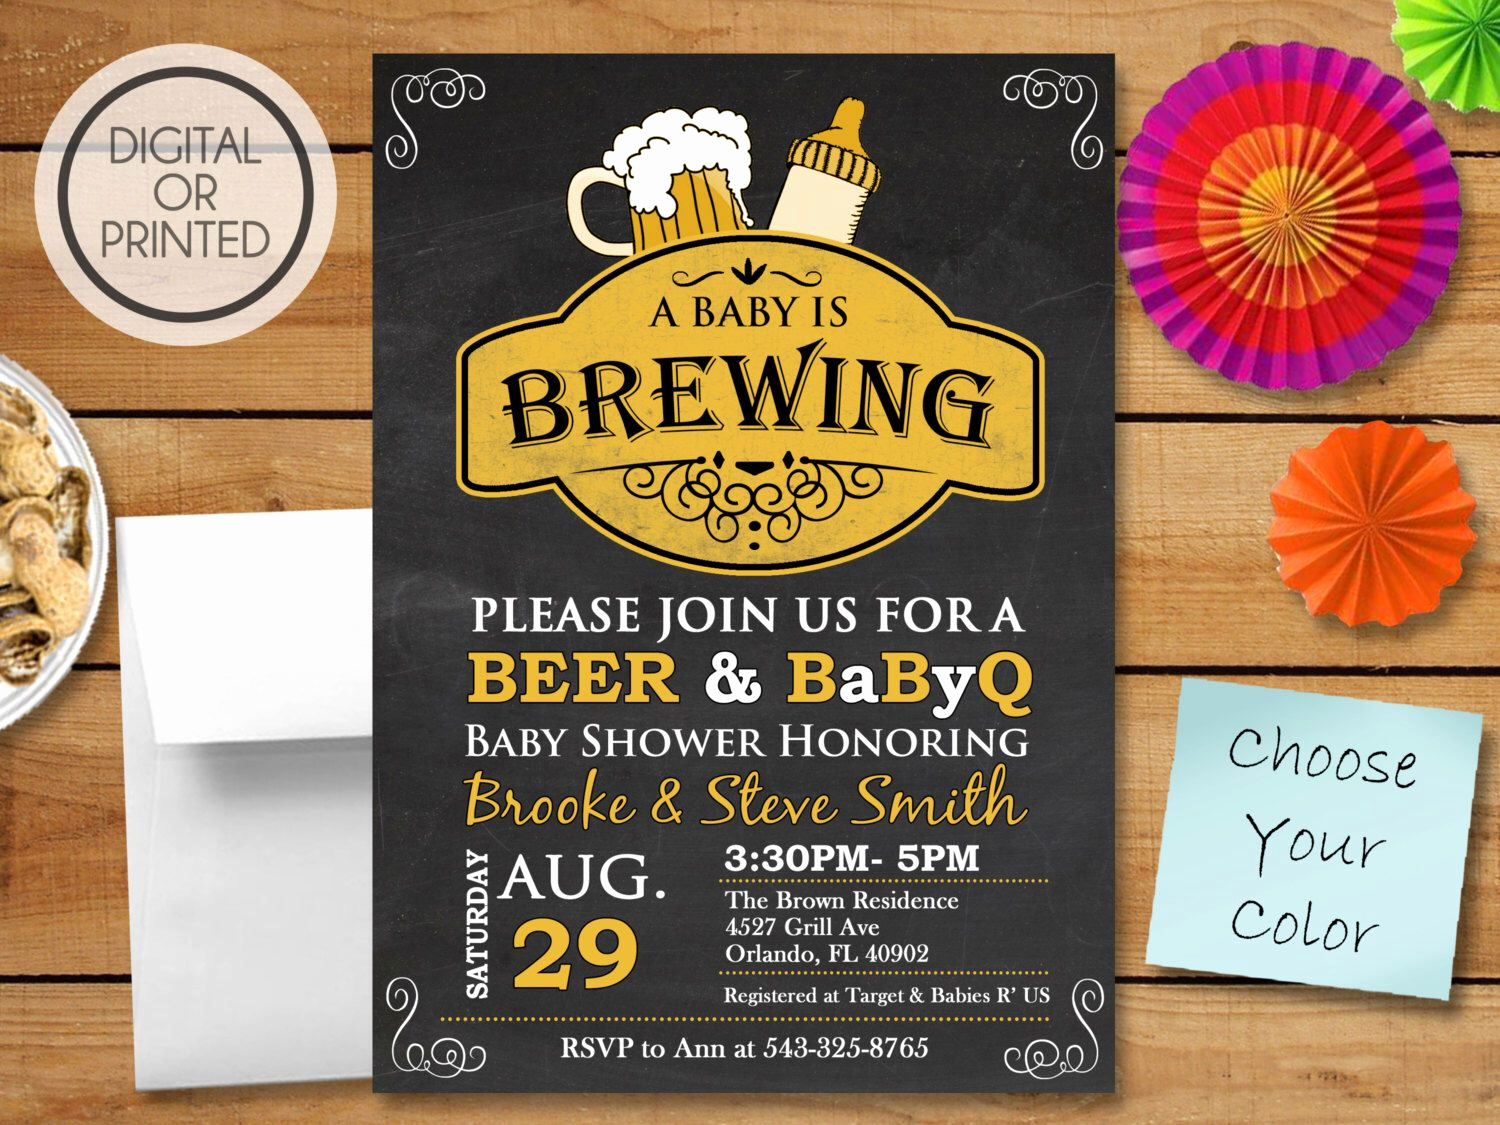 A Baby is Brewing Invitation Elegant A Baby is Brewing Invitation Bbq Baby Shower Invitation